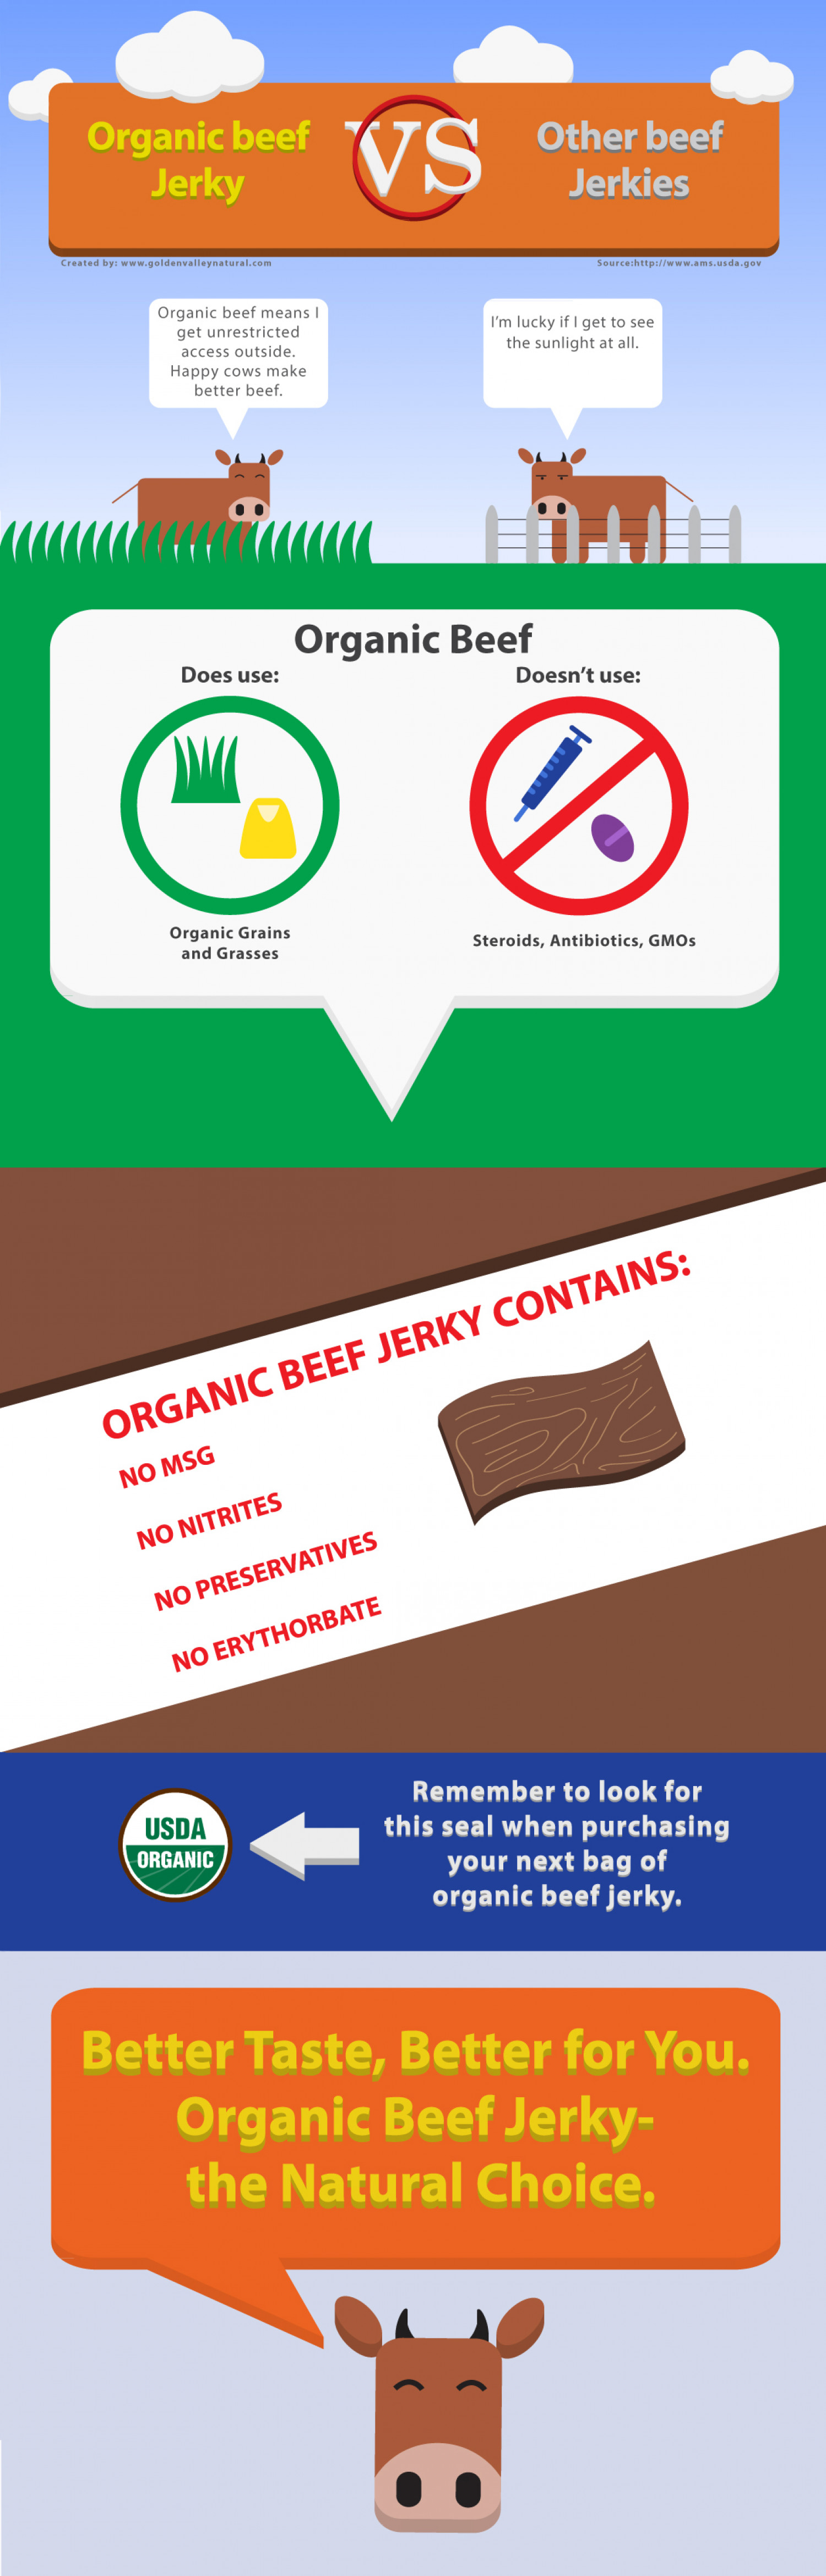 Organic Beef Jerky vs Other Beef Jerky Infographic